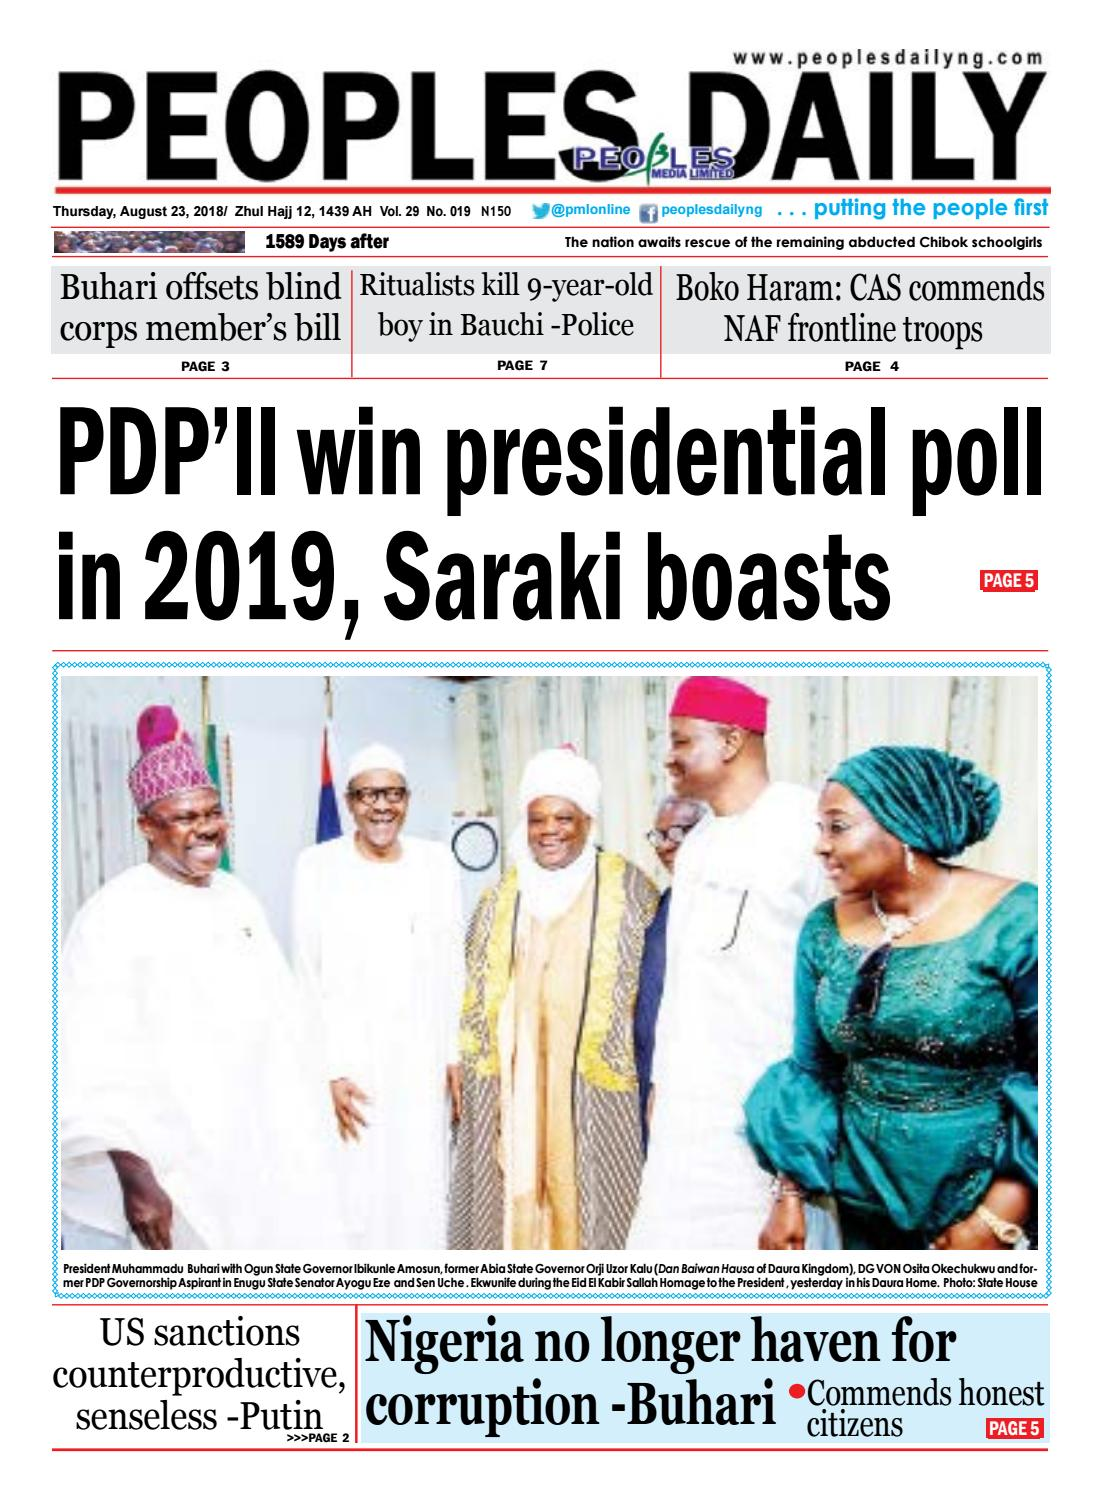 Thursday, August 23, 2018 Edition by Peoples Media Limited